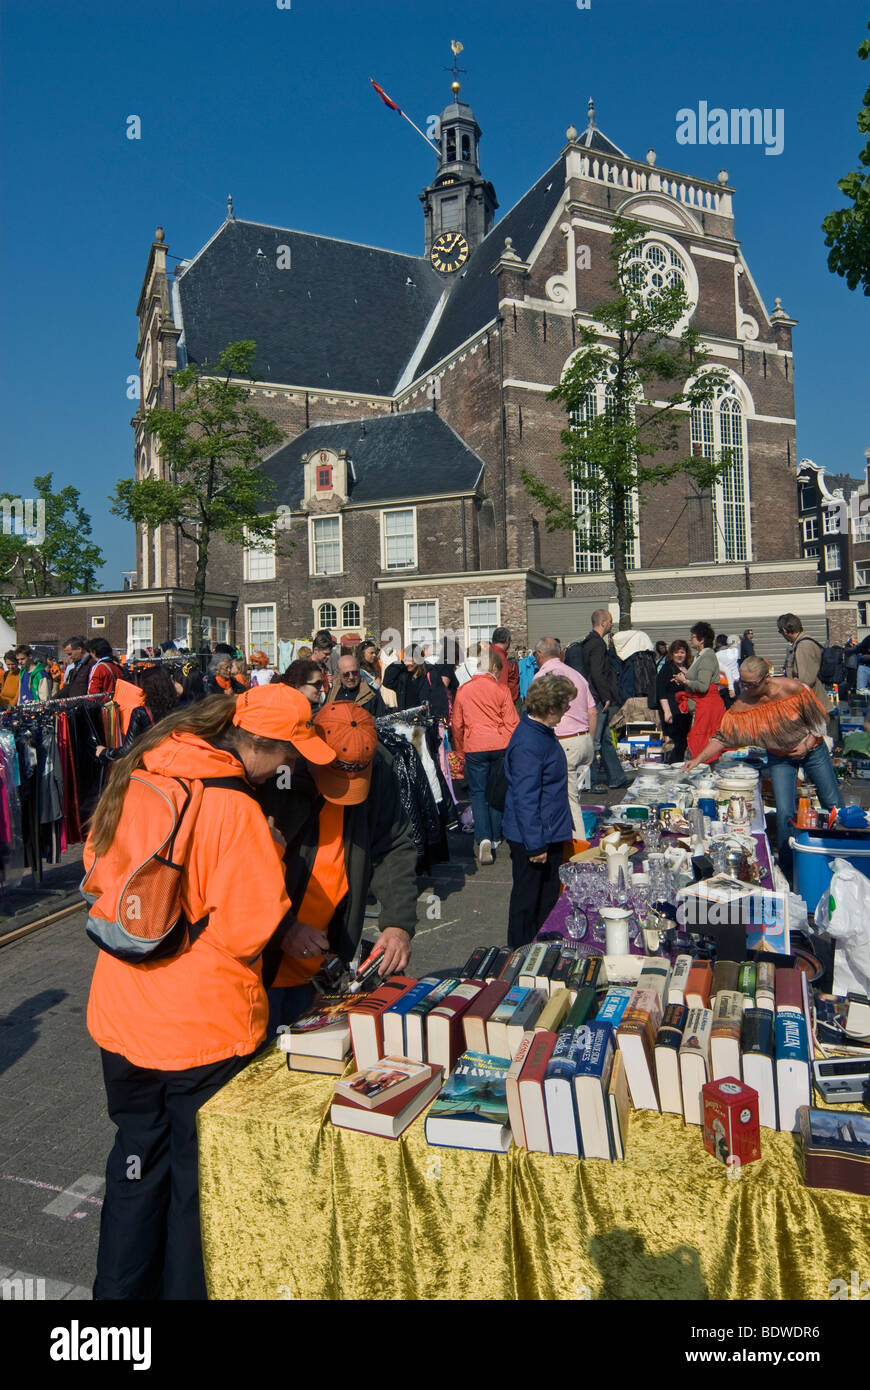 Antiques and book market in front of Noorderkerk (or North Church) in Amsterdam's Jordaan district - Stock Image